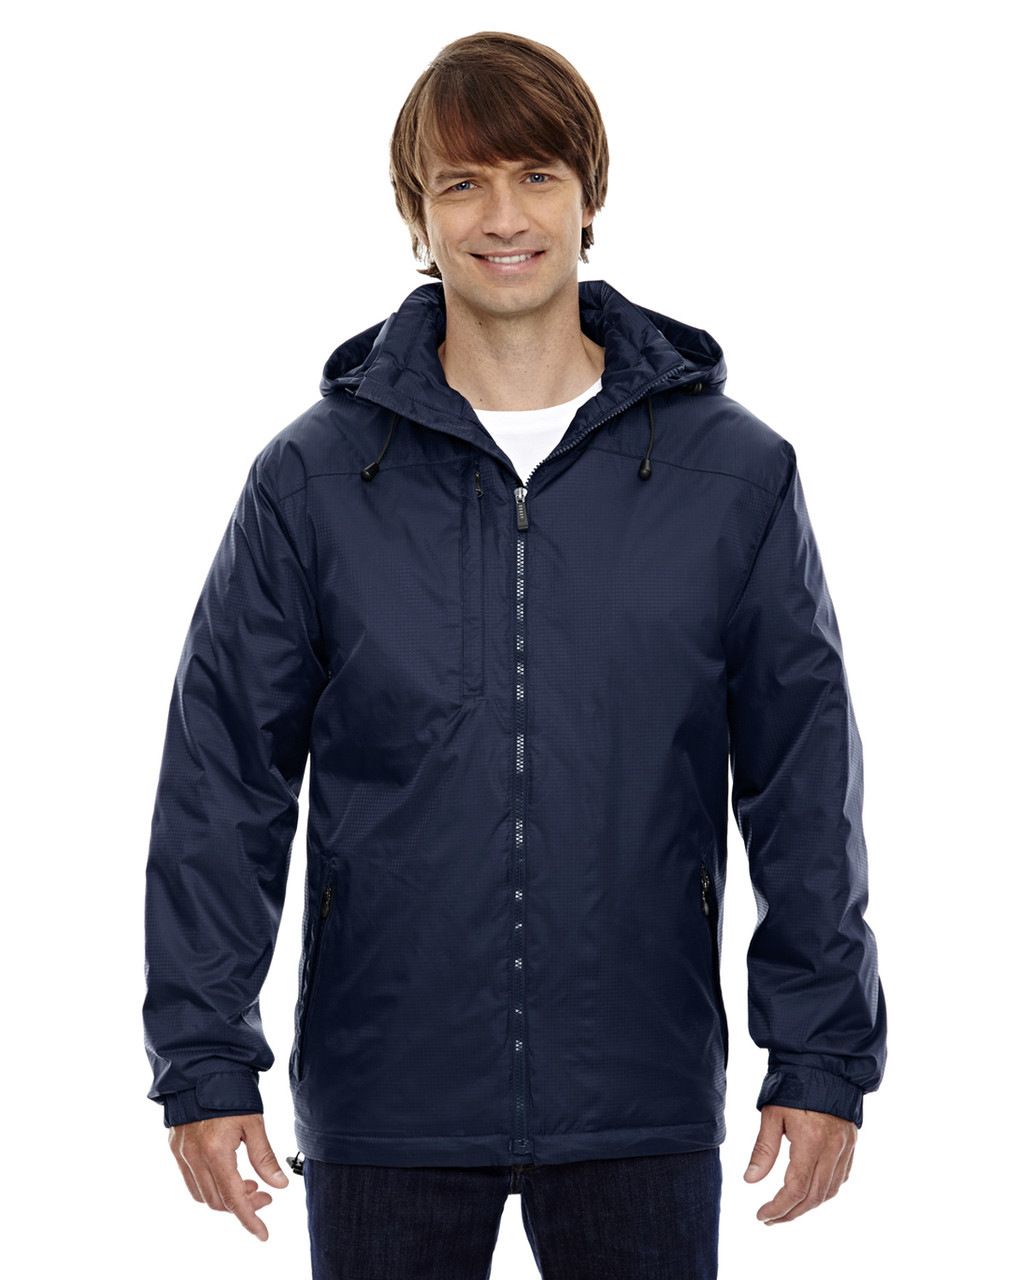 Midnight Navy - 88137 North End Men's Hi-Loft Insulated Jacket | Blankclothing.ca